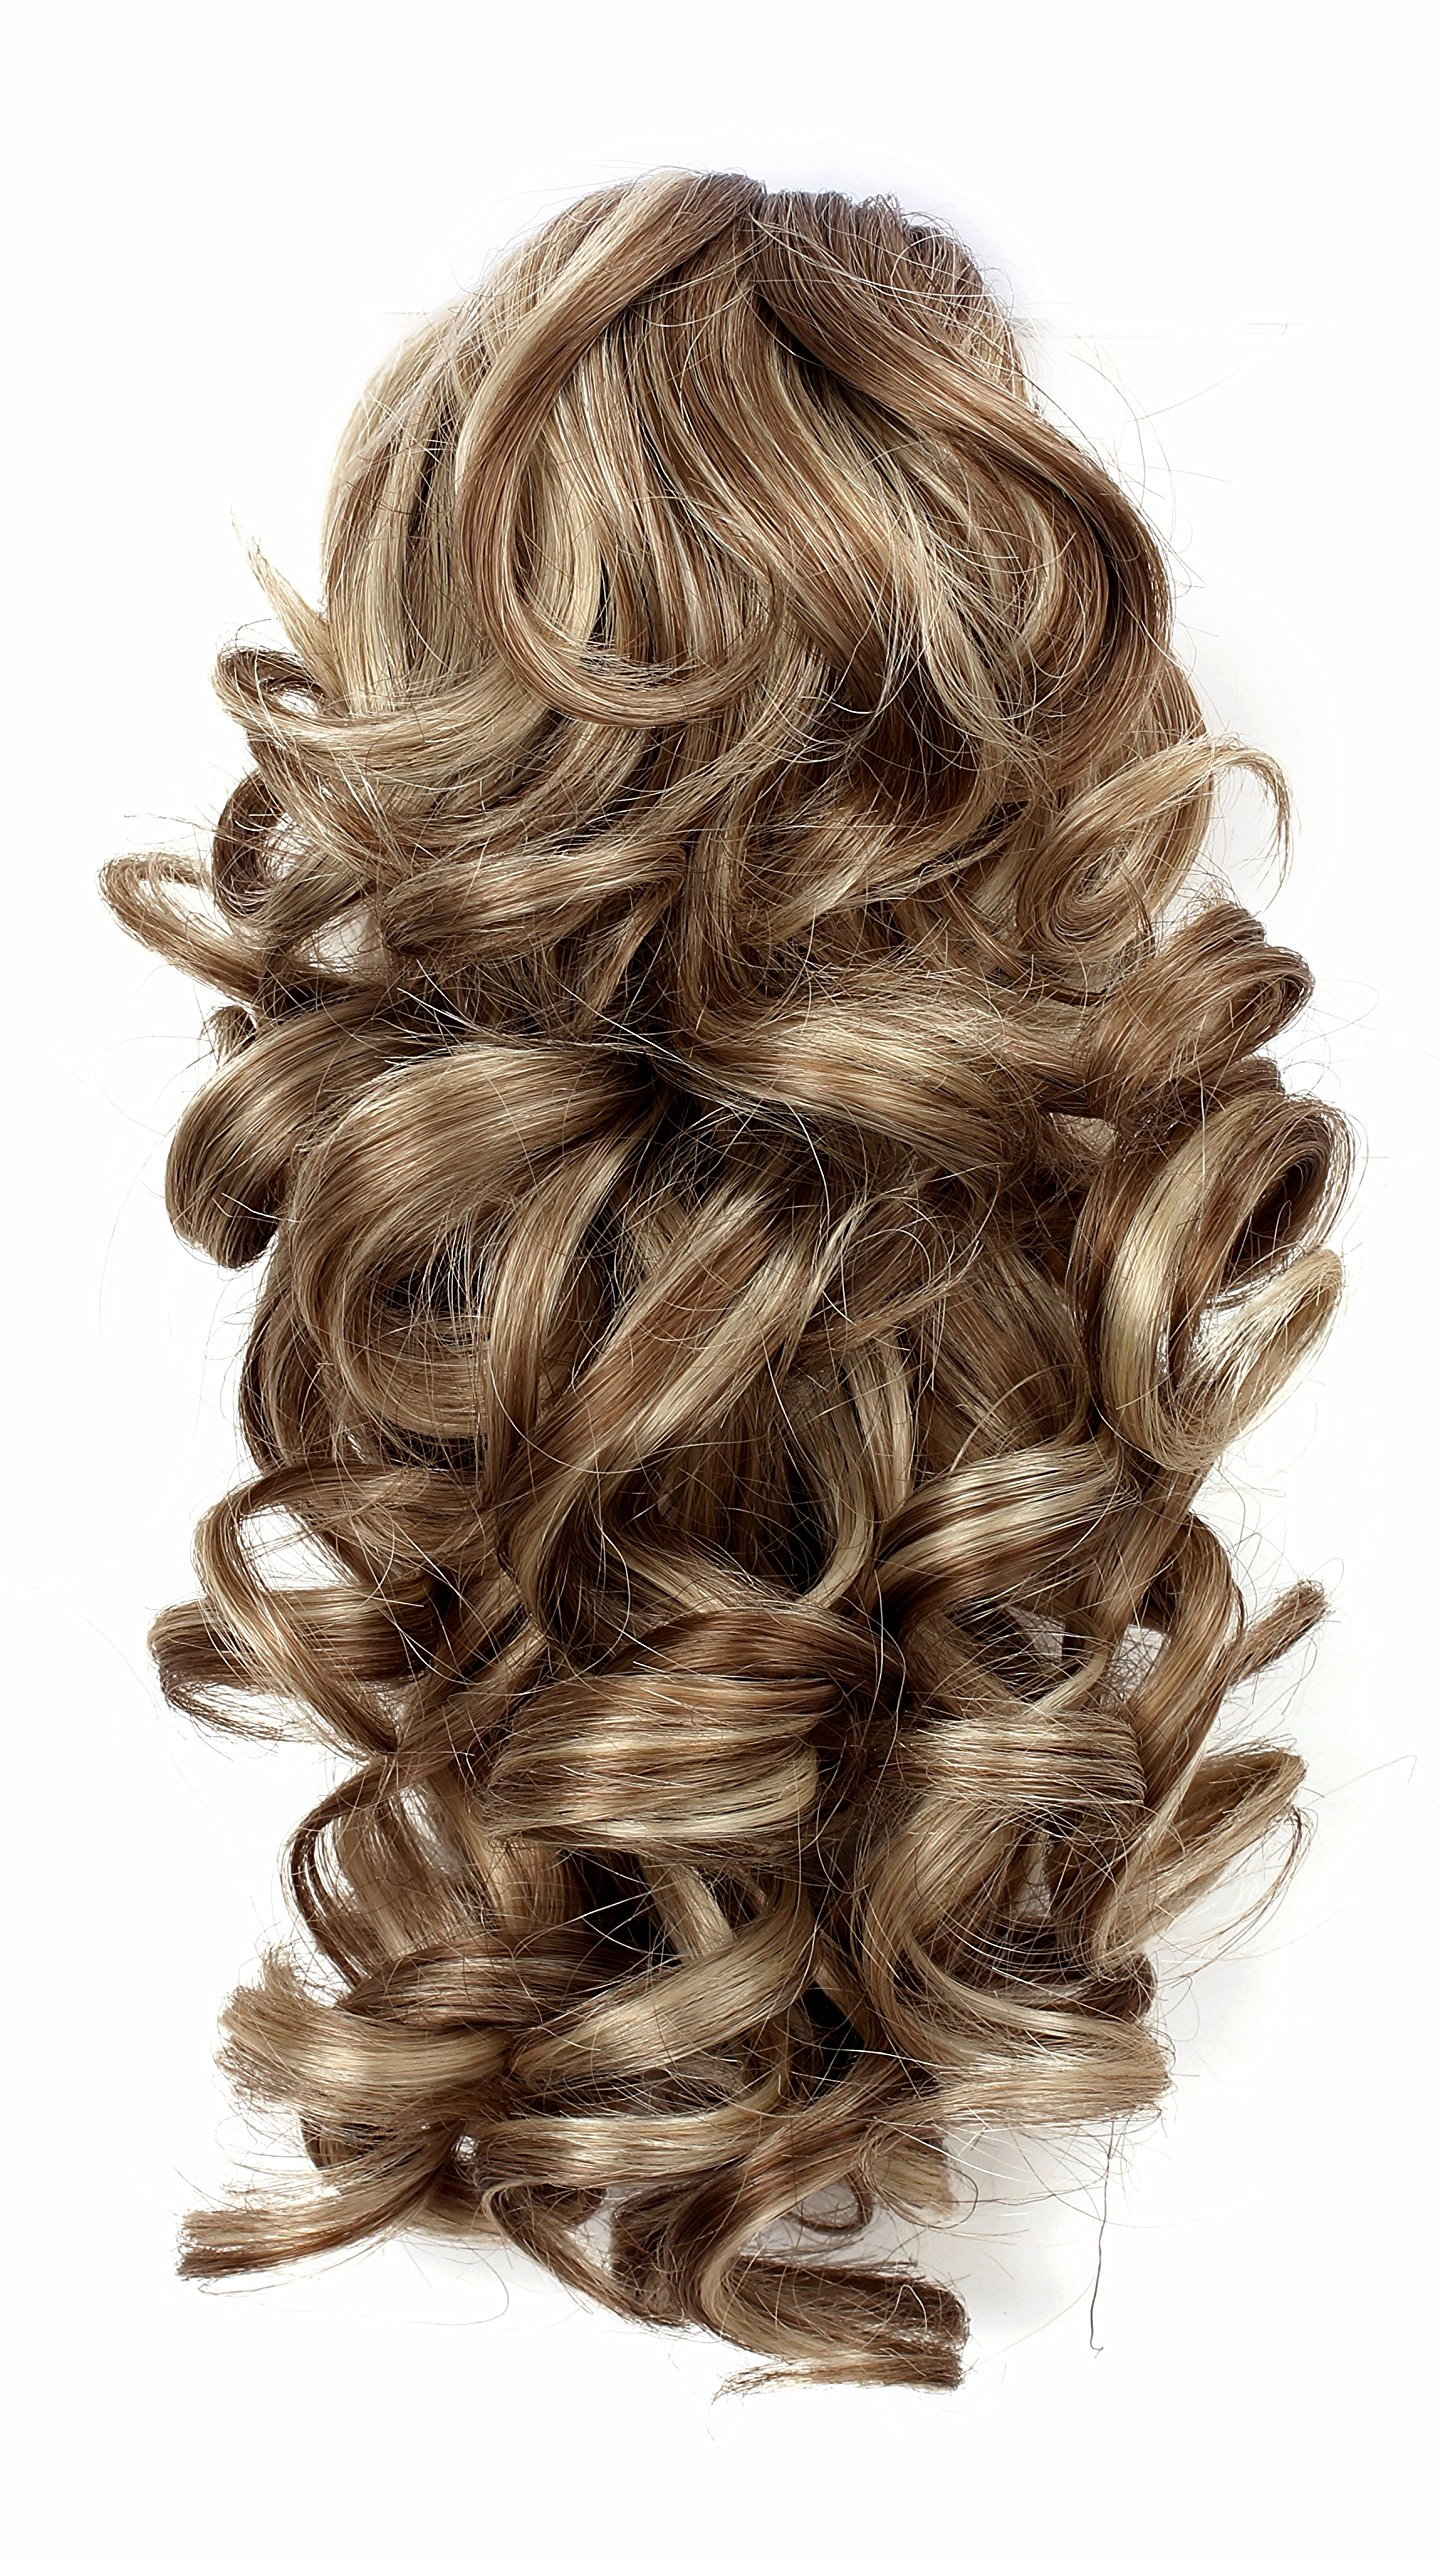 Onedor 12'' Synthetic Fiber Natural Textured Curly Ponytail Clip In/On Hair Extension Hairpiece (H16/613)